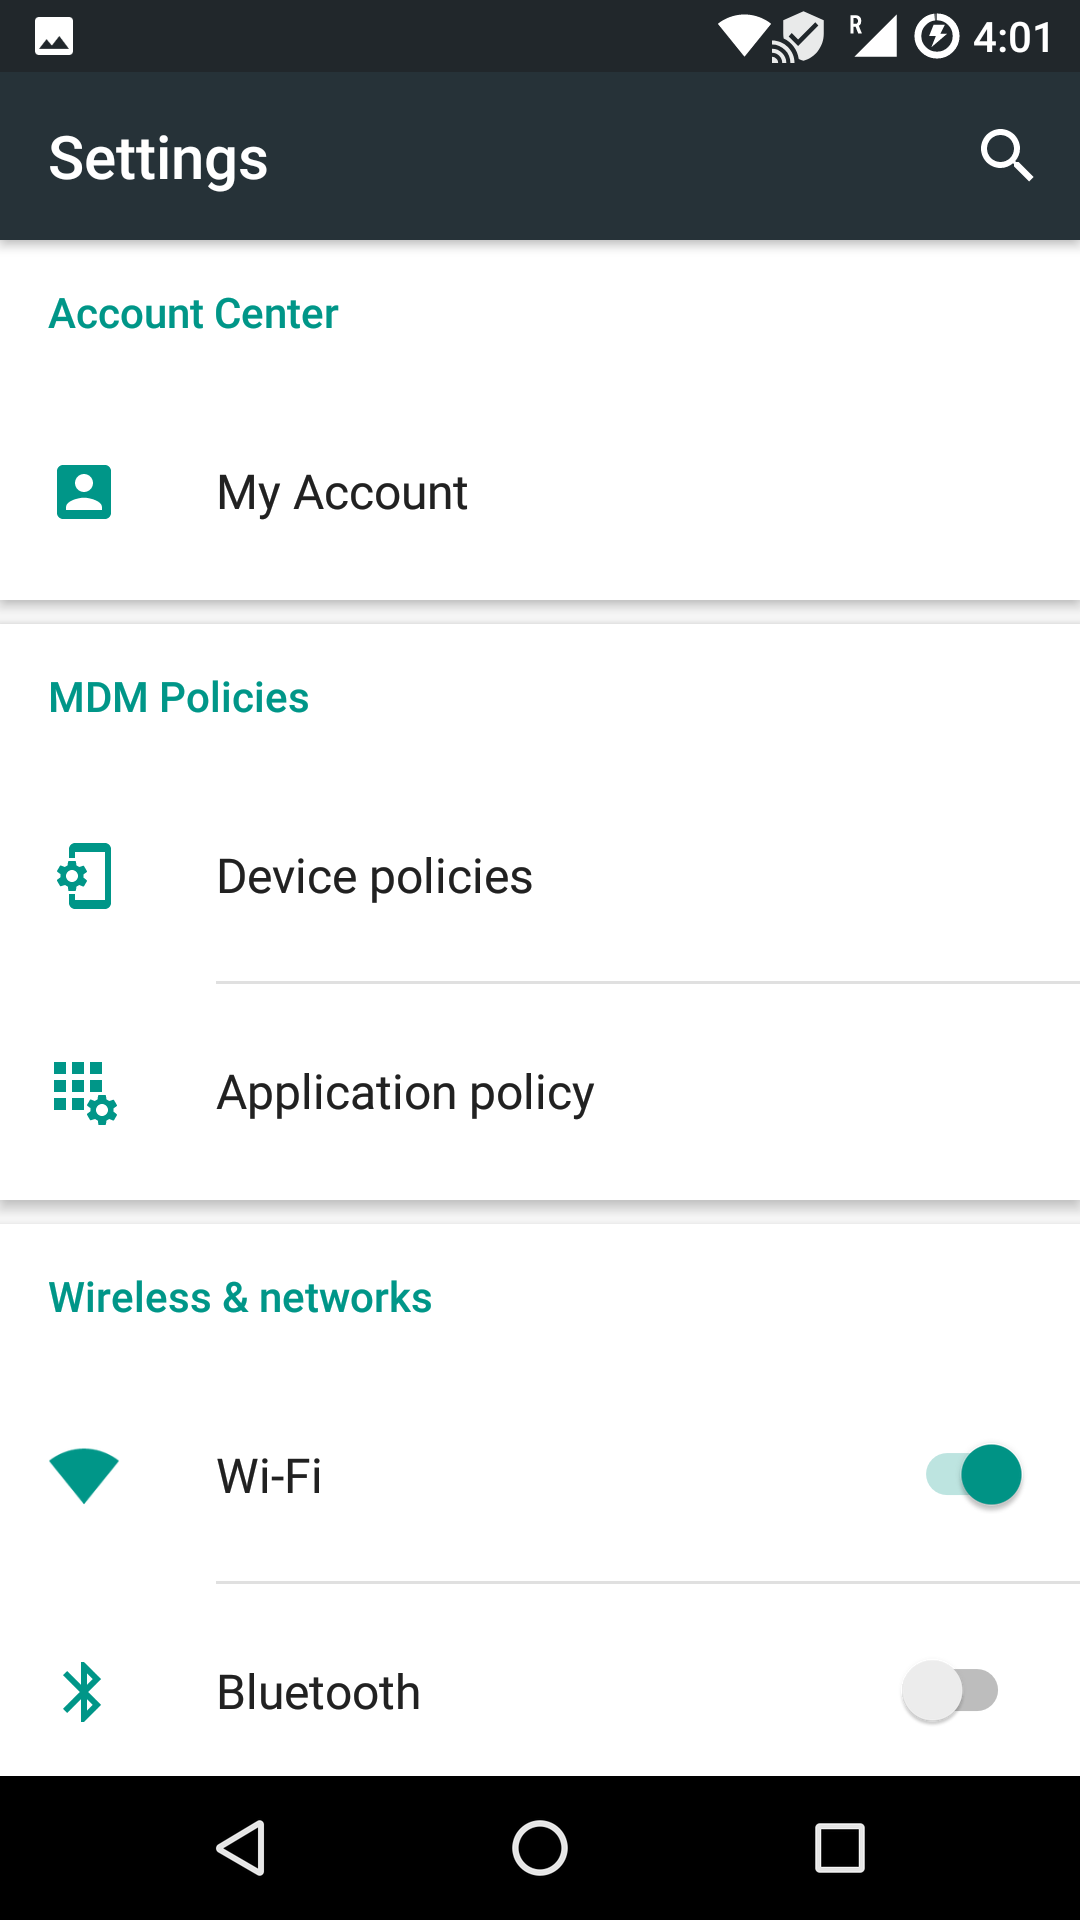 The re-arranged Settings menu